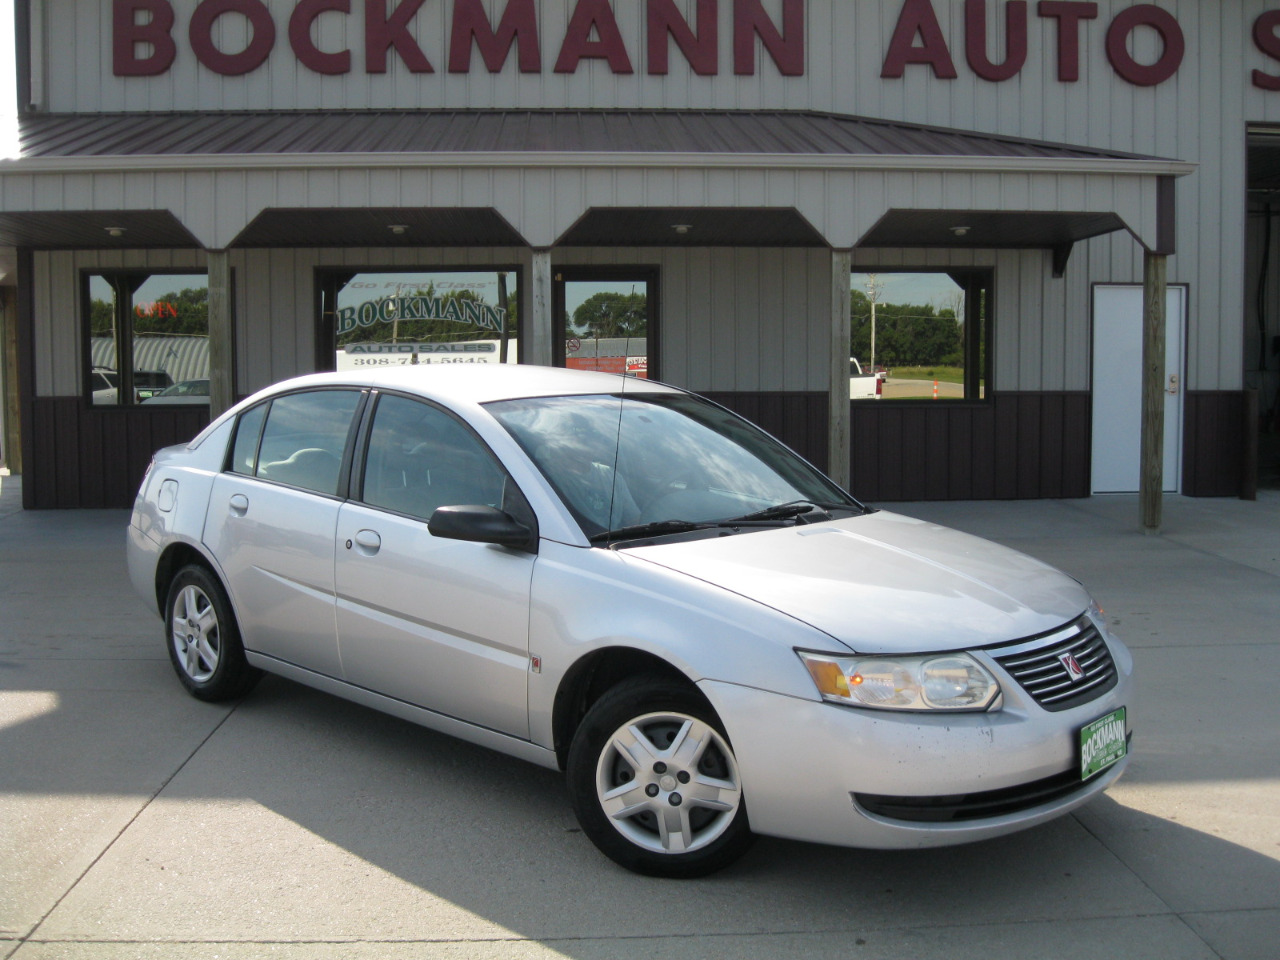 2006 Saturn ION ION 2 4dr Sdn Auto